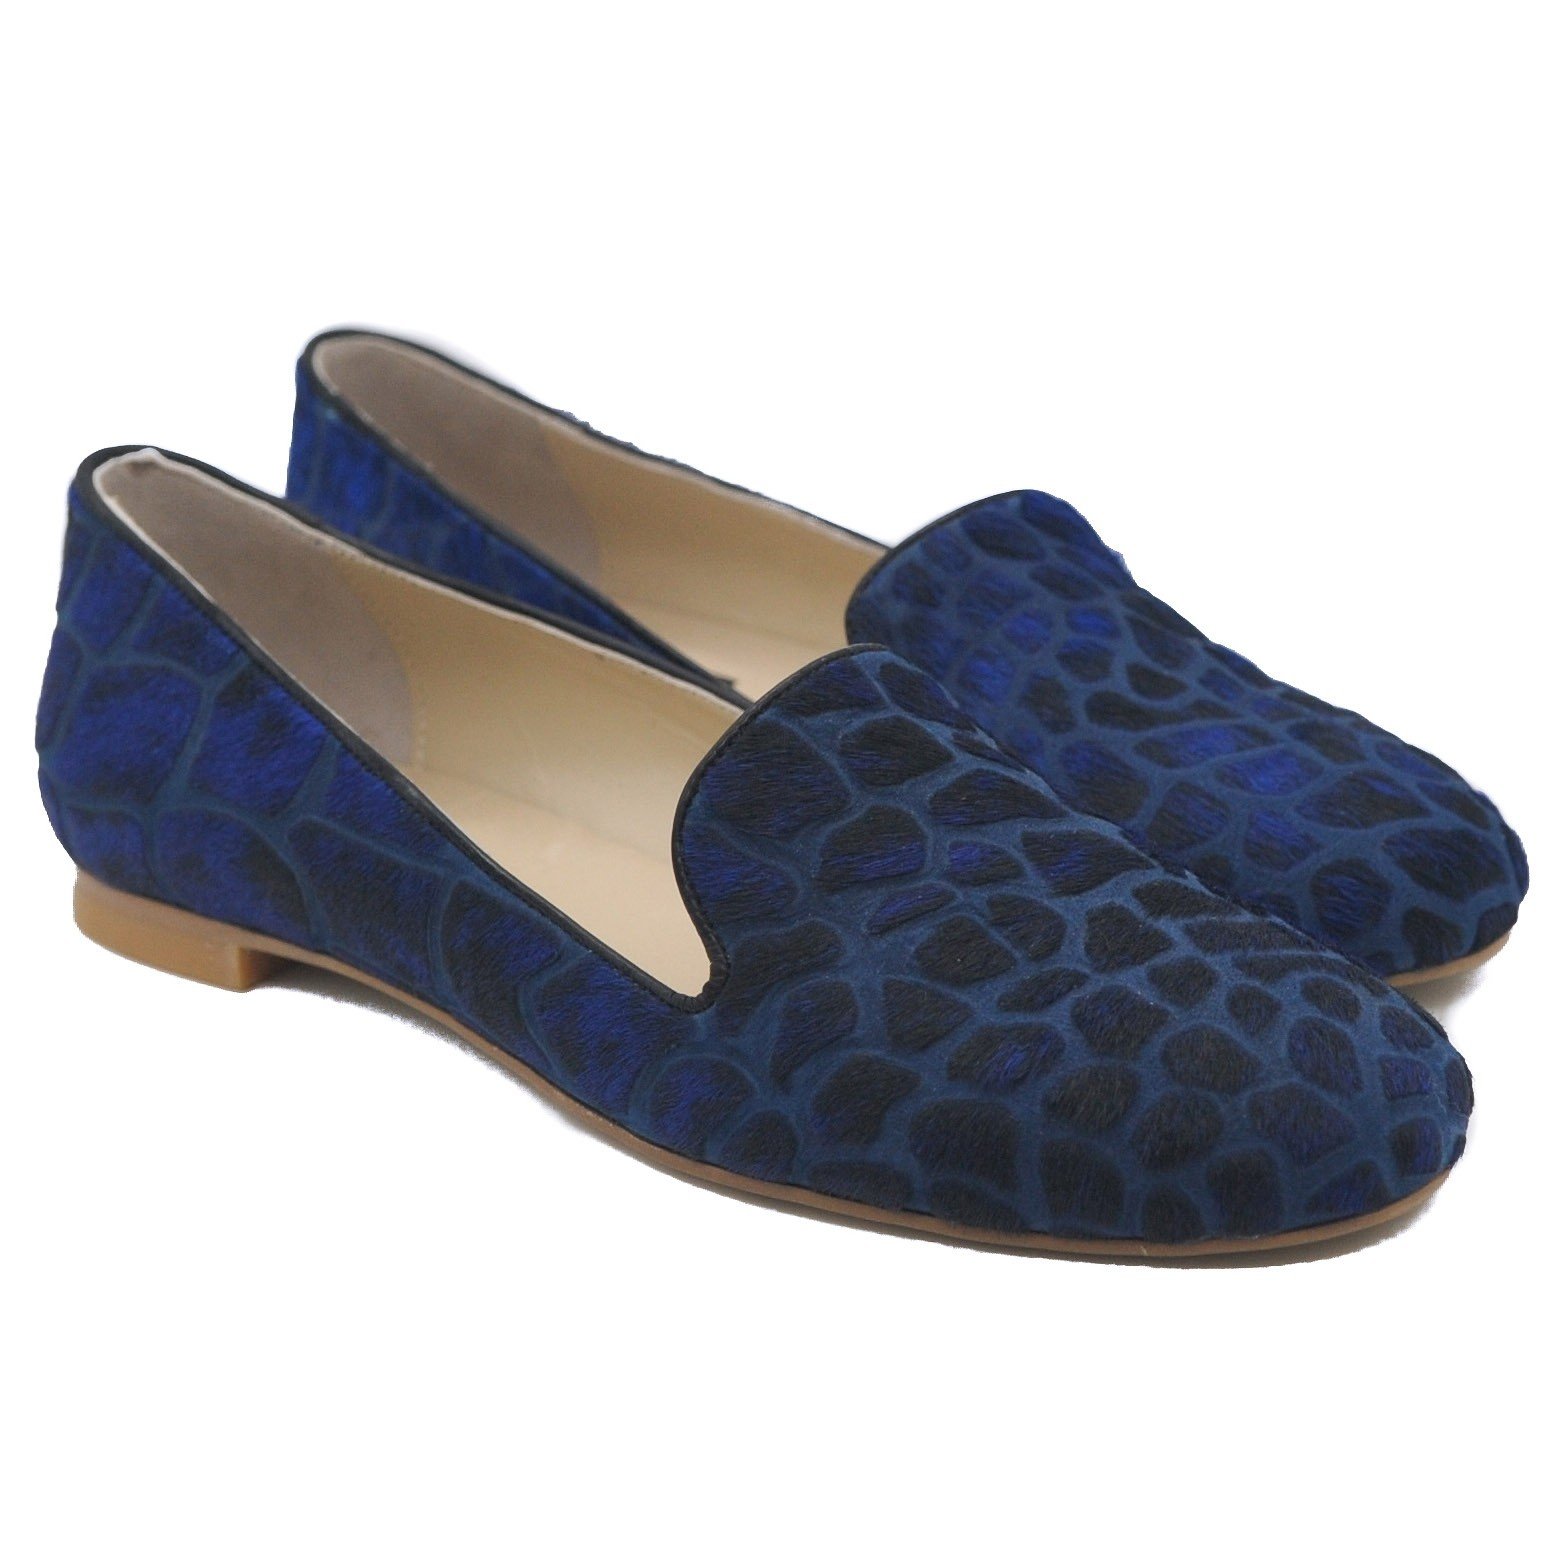 Pegia Ladies' Blue Mottled Animal Print Pony Hair and Suede Flat Pumps